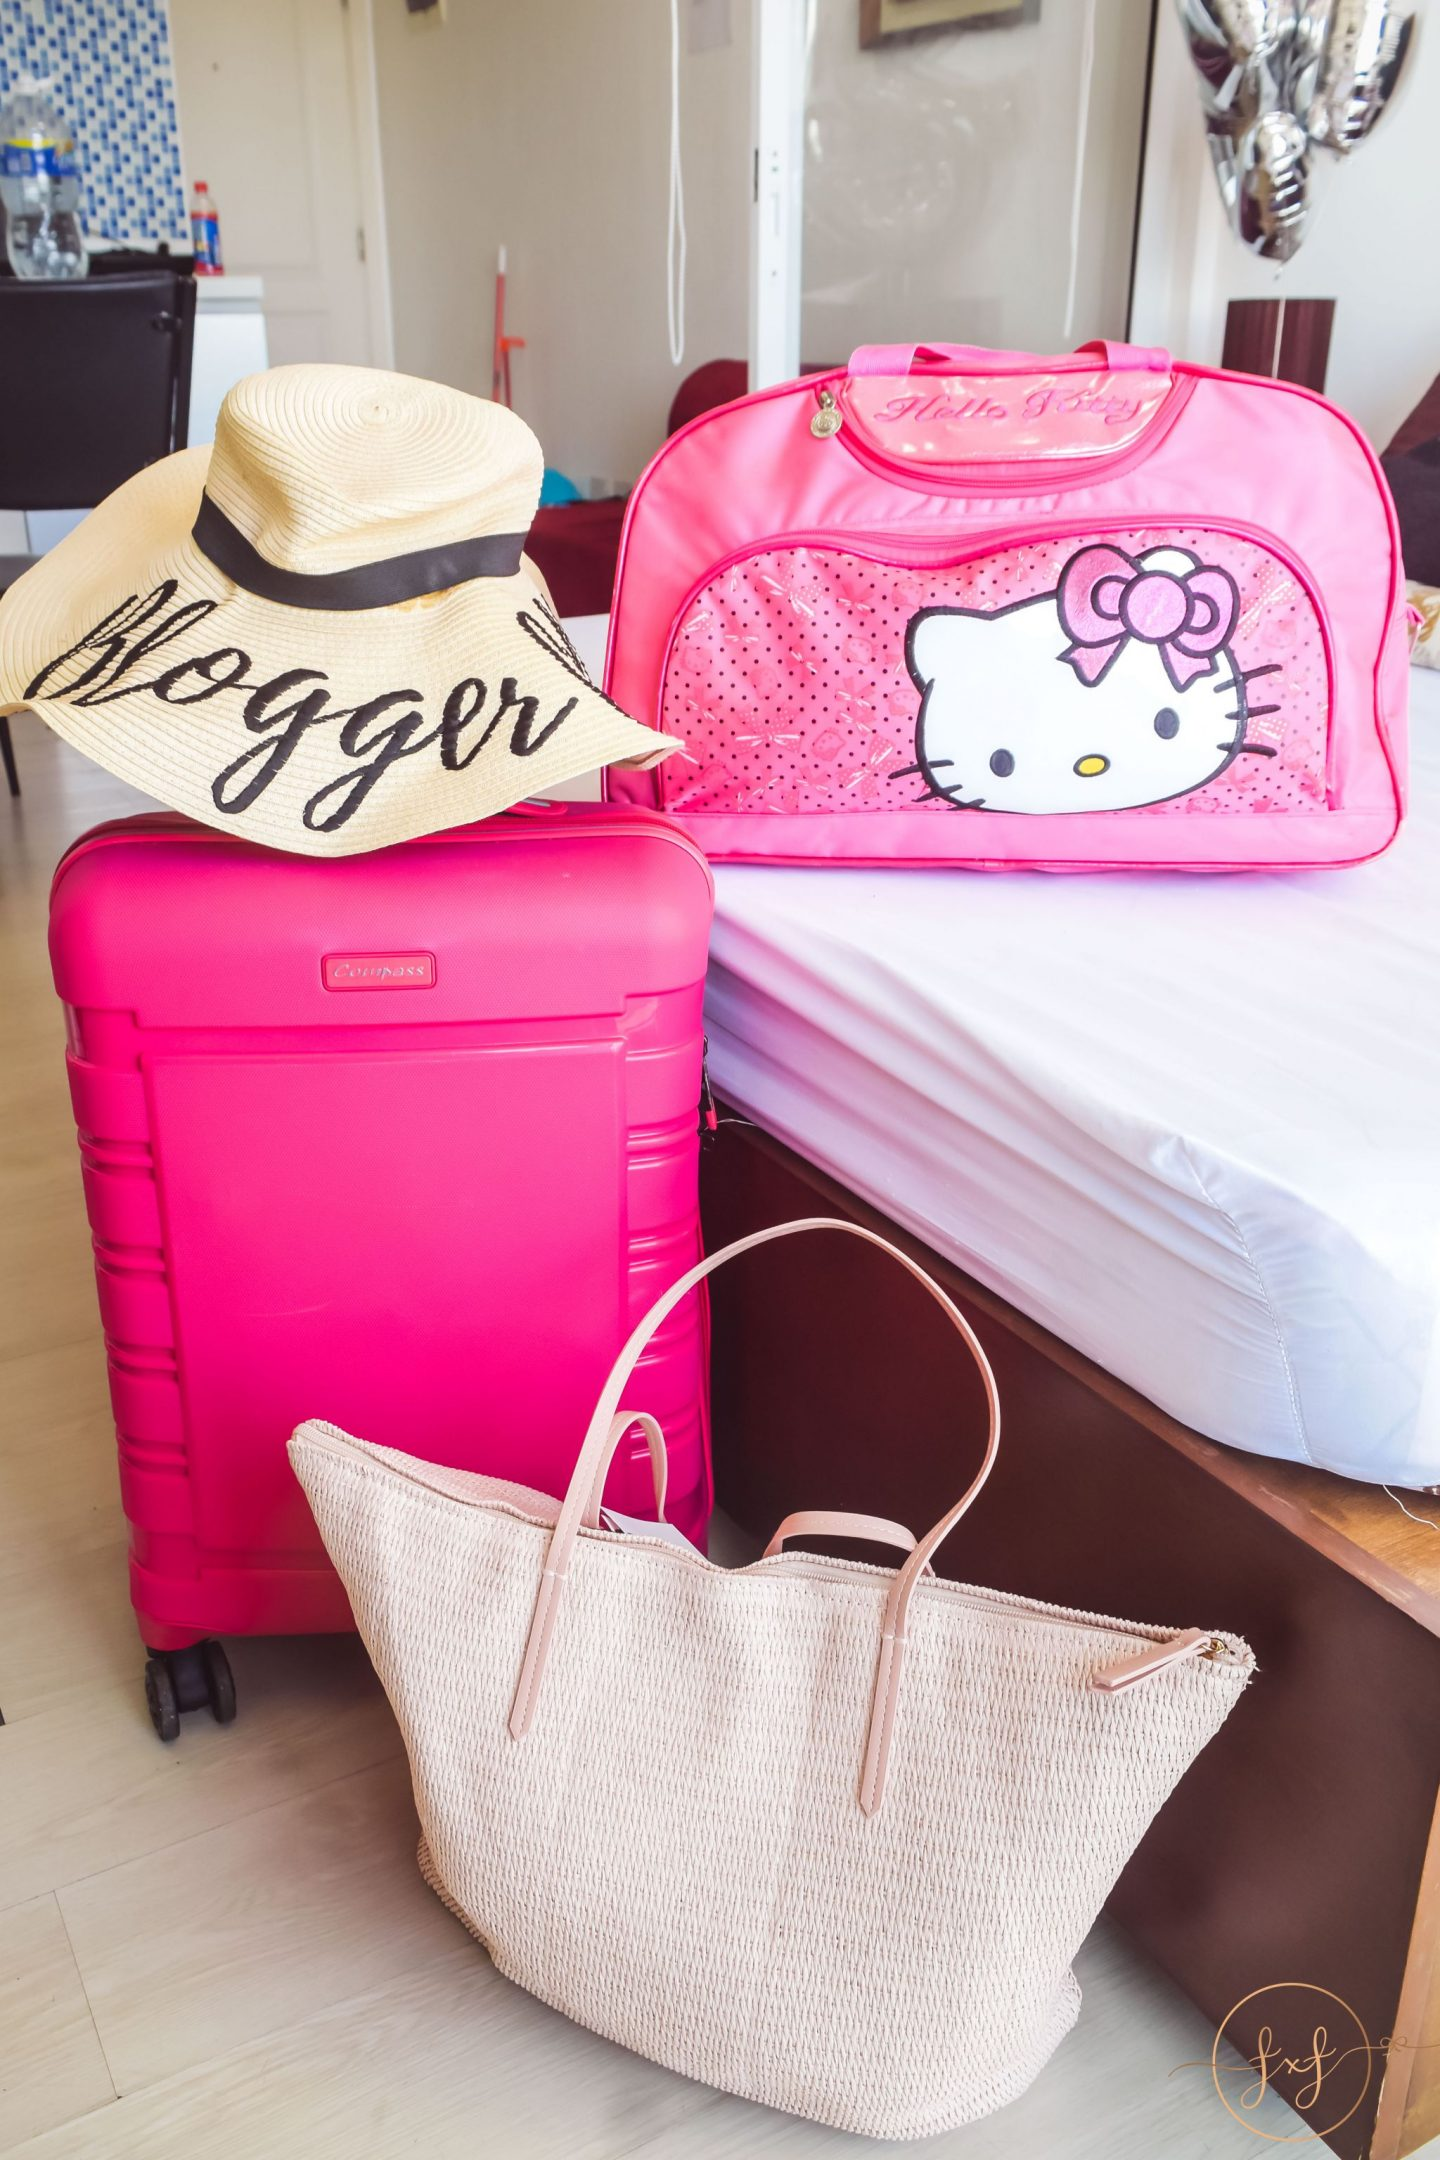 Pack With Me for my 25th Birthday Staycation